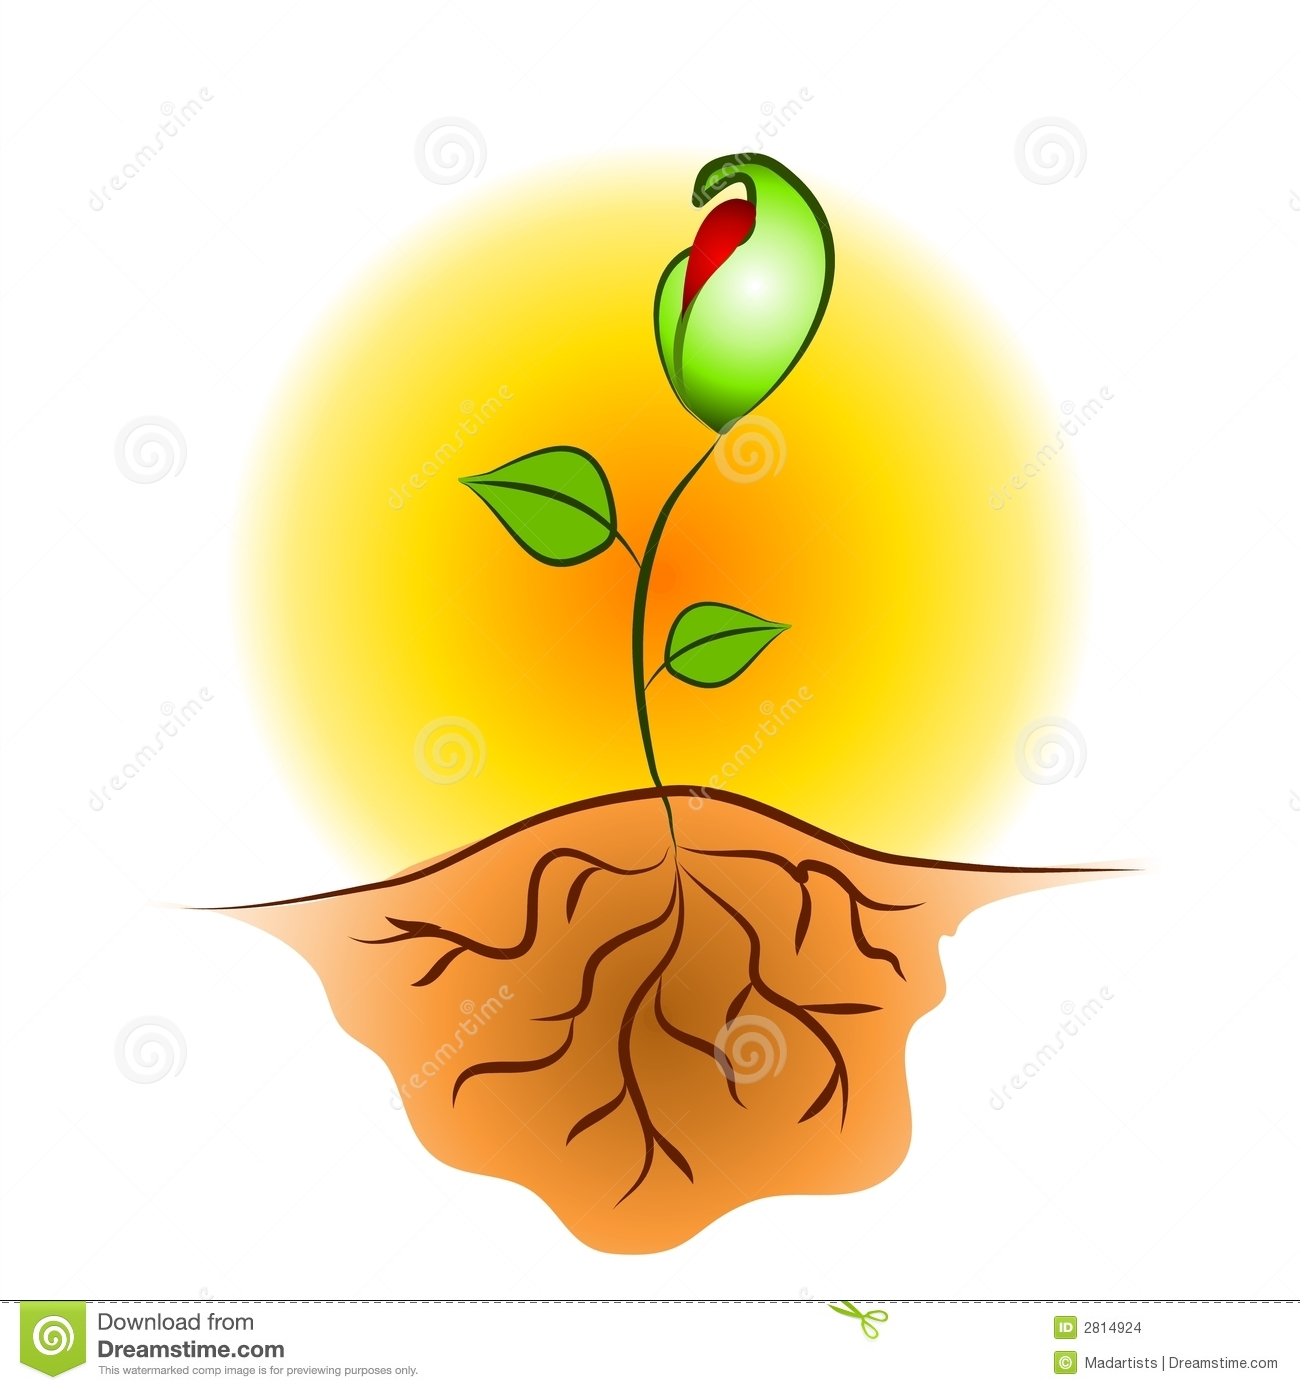 Clip Art Illustration Of A Young Seedling Plant Growing Against A